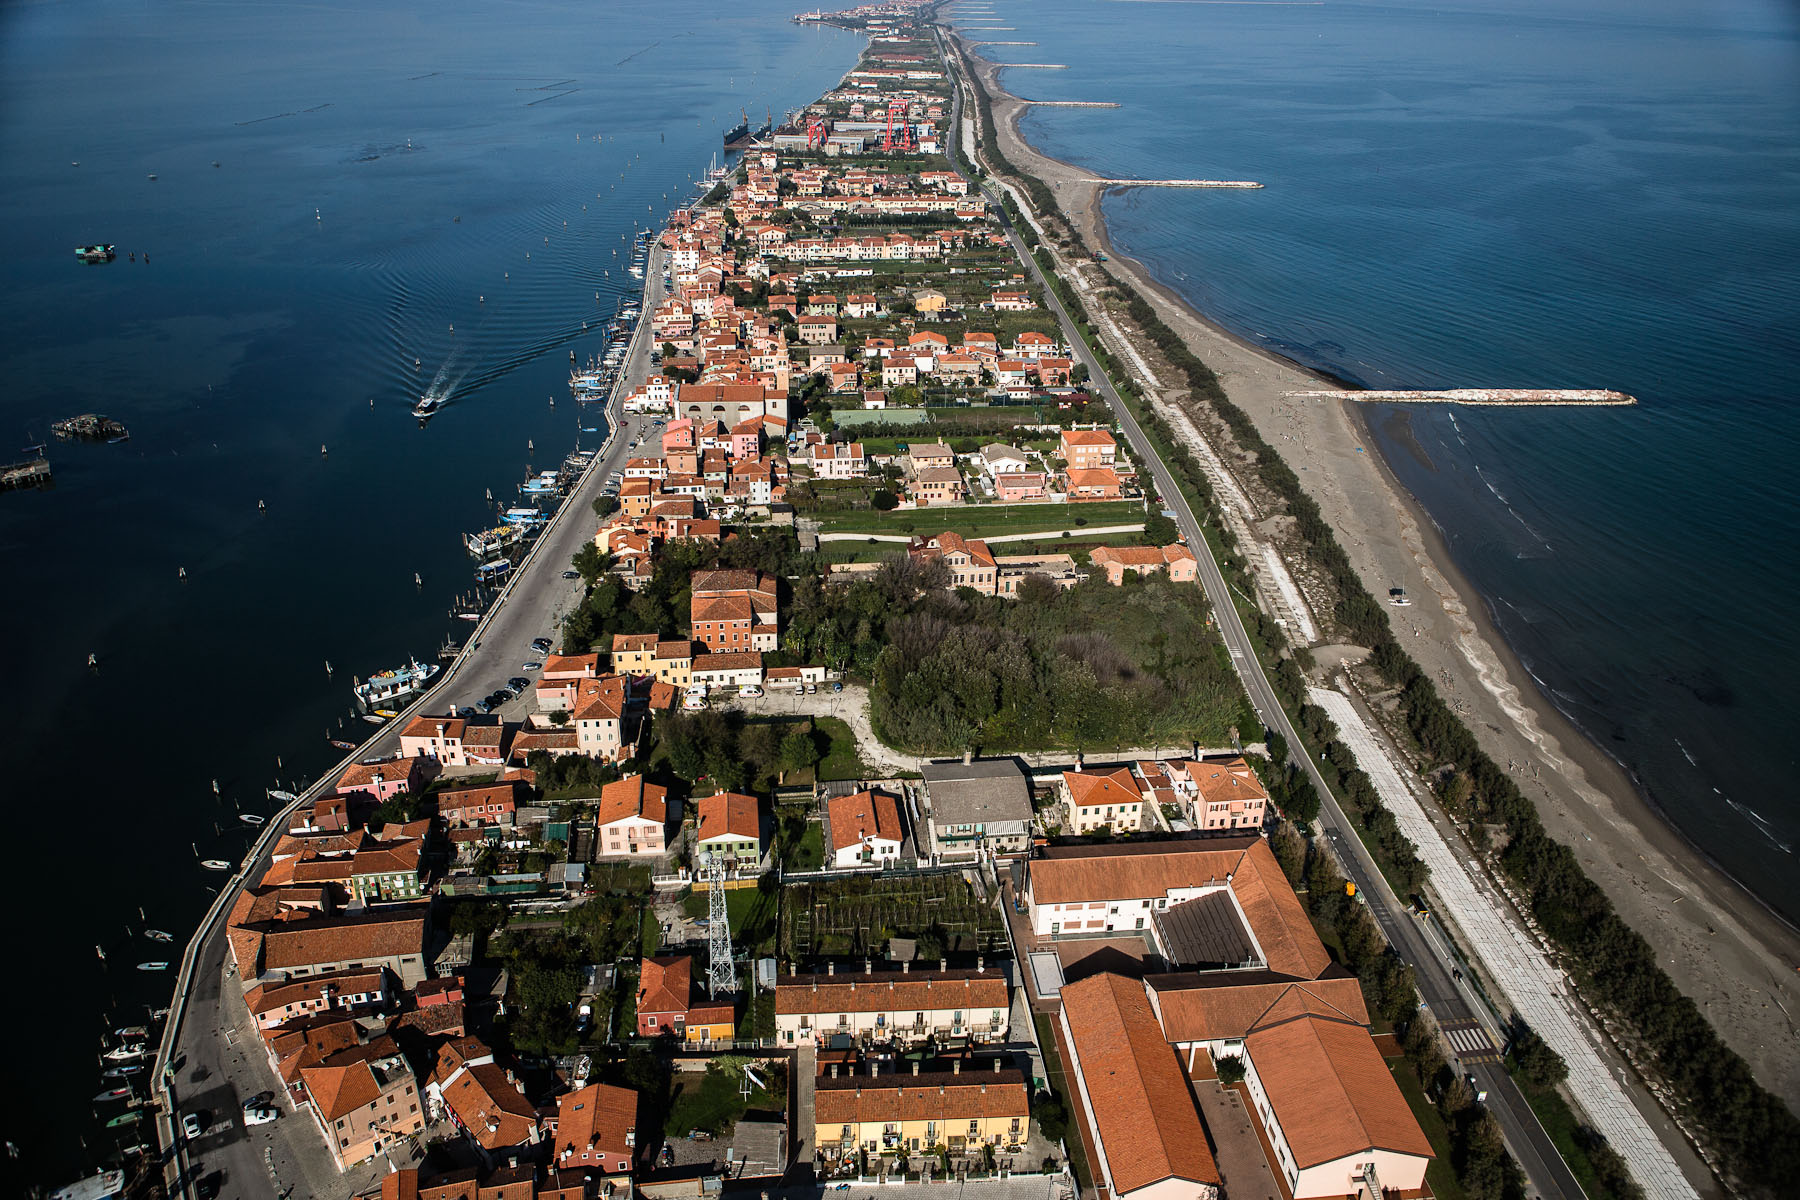 The murazzi wall runs the entire length of the Pellestrina barrier island, and a part of Lido island further north. Furthermore, the entire sea coast has been reinforced.